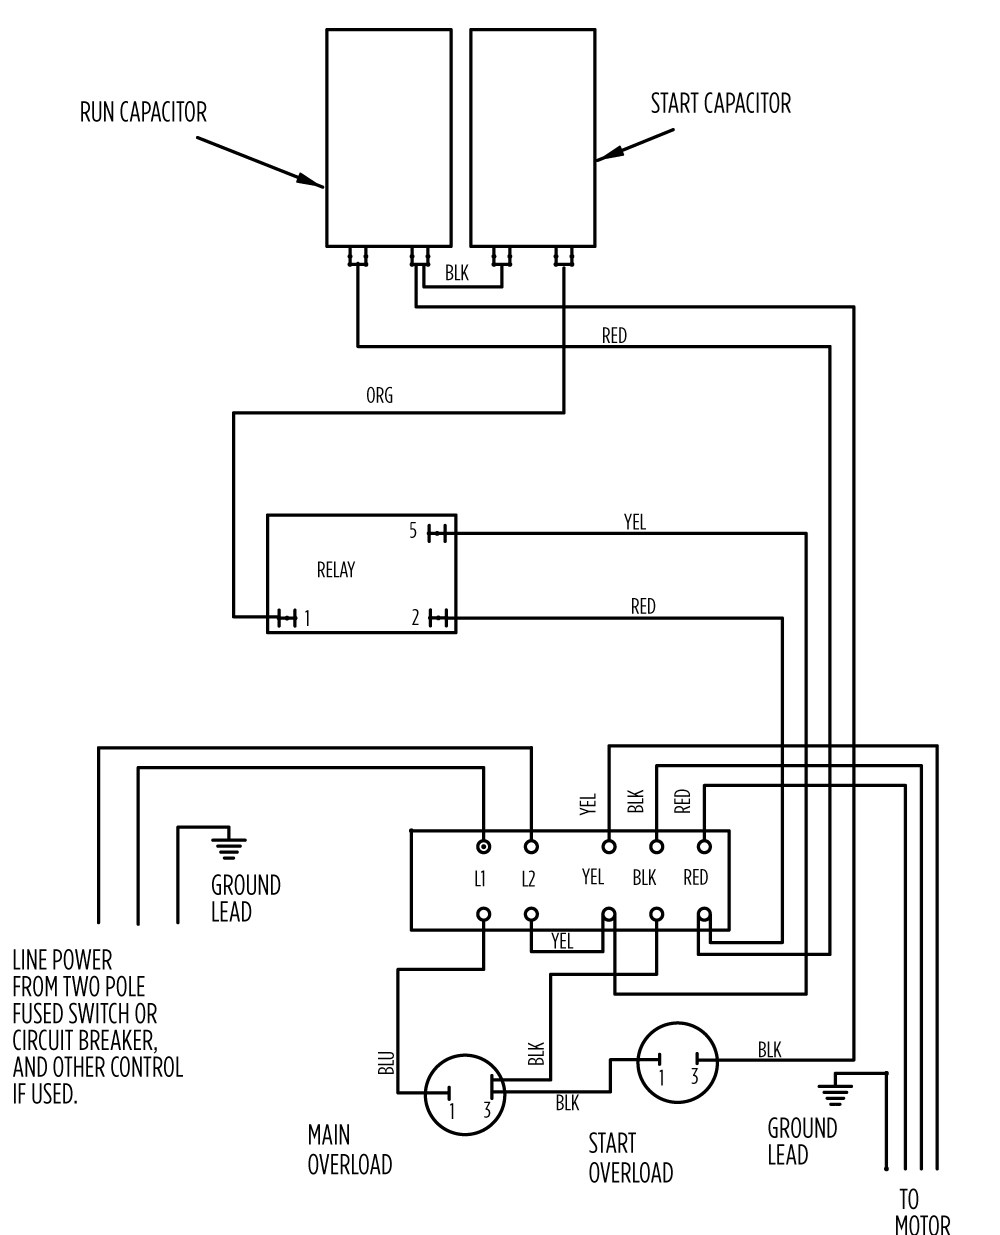 Pump Control Relay Wiring Data Schematics Diagram Basics Aim Manual Page 55 Single Phase Motors And Controls Motor Rh Franklinwater Com Hvac Contactor Diagrams